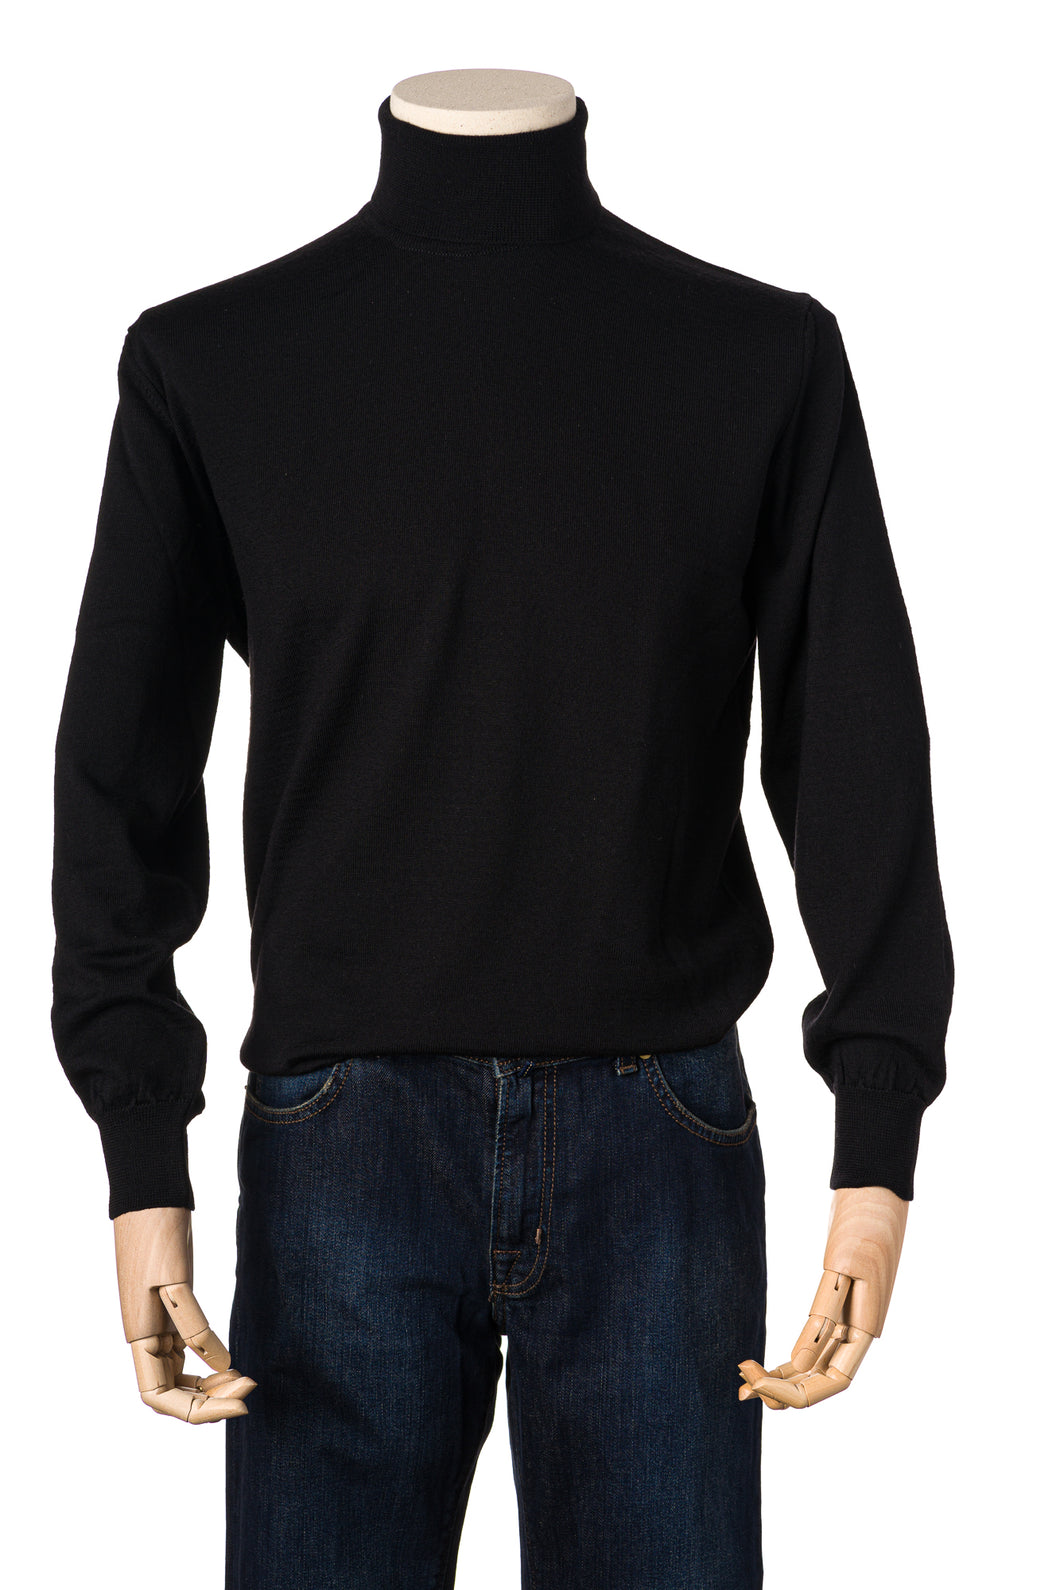 Doria Black Merino Roll Neck